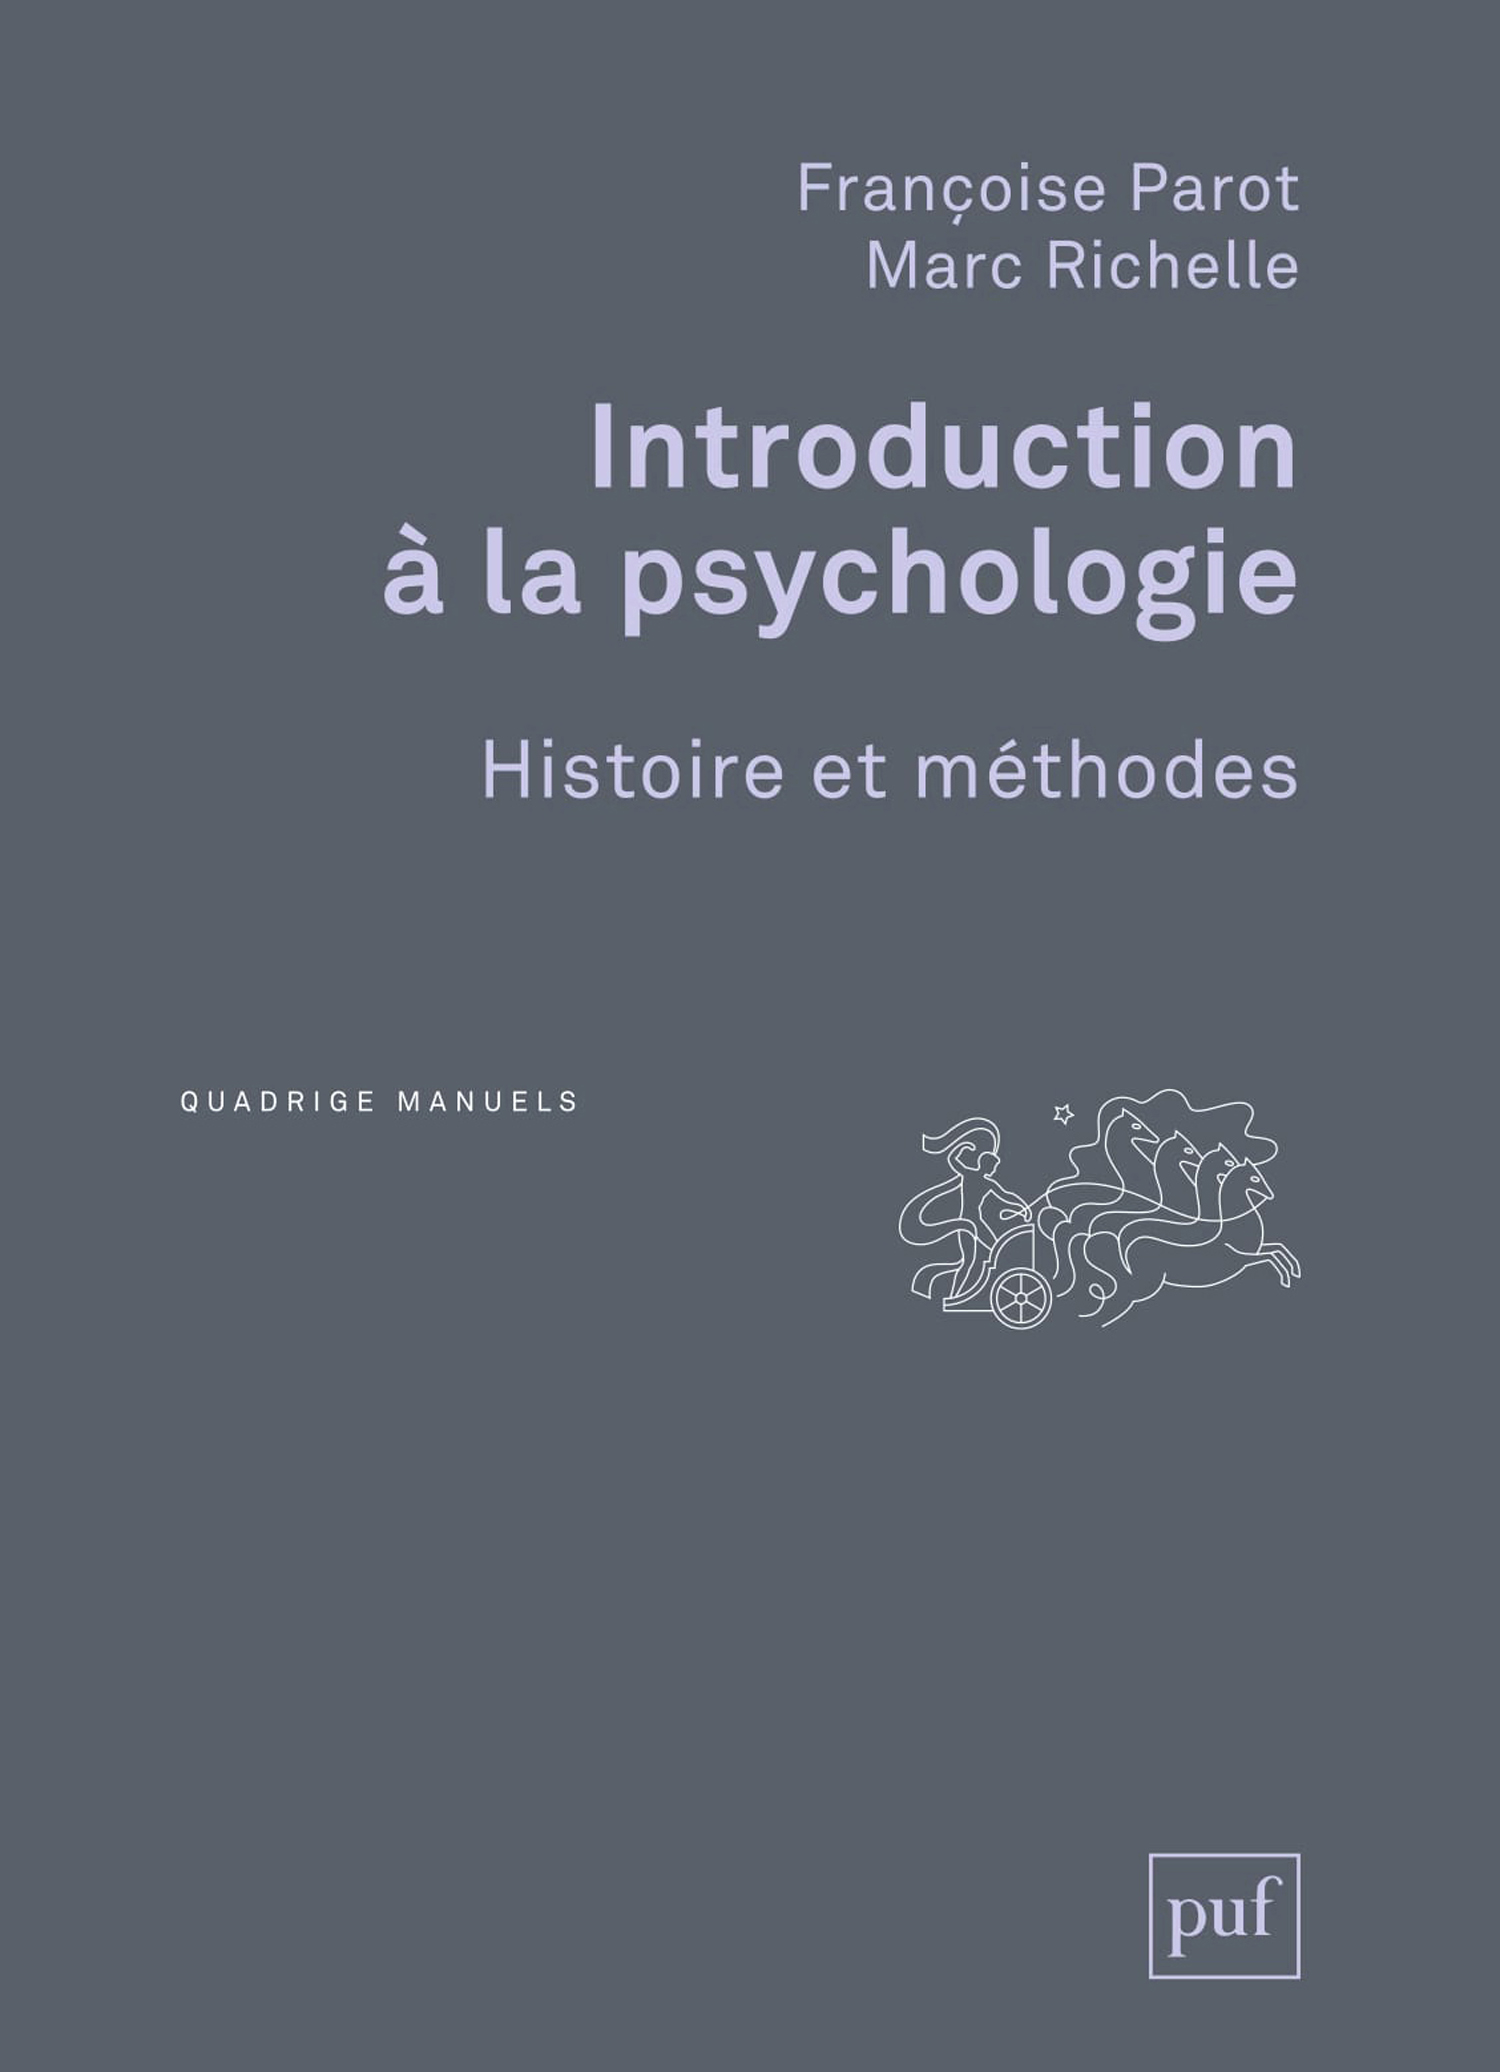 Introduction à la psychologie De Françoise Parot et Marc Richelle - Presses Universitaires de France